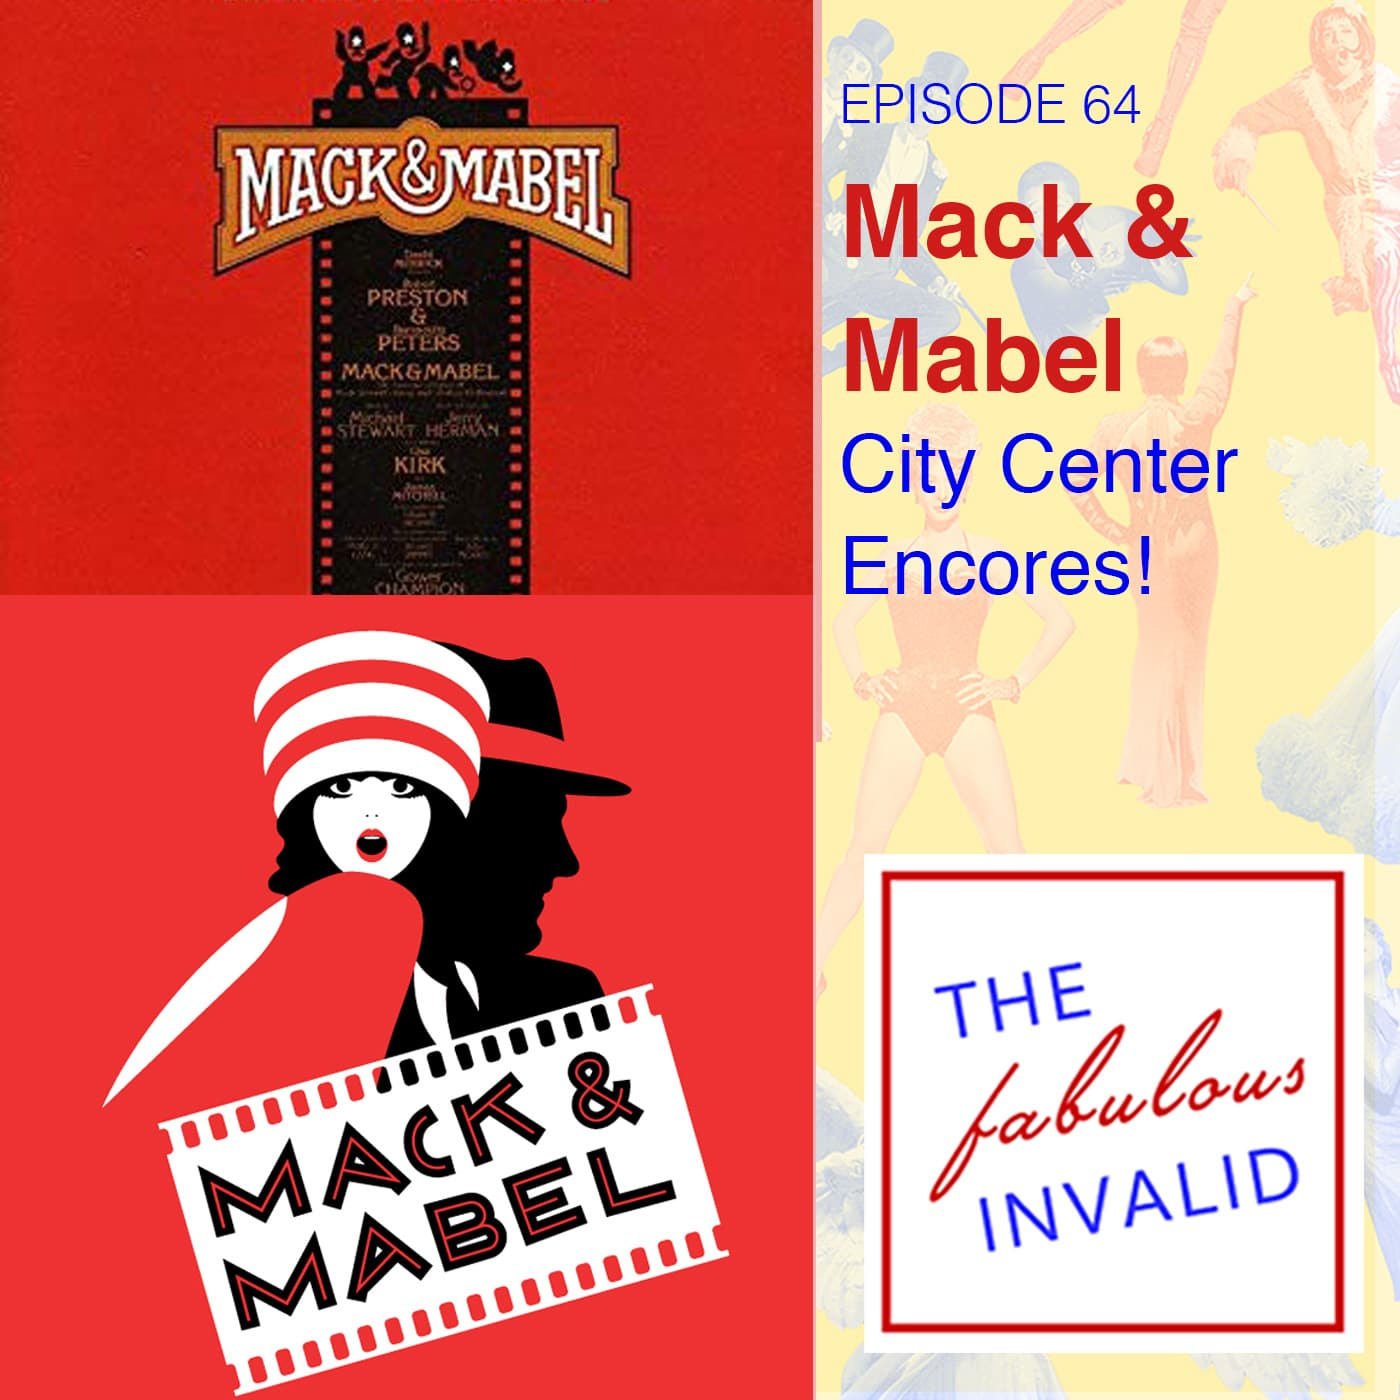 The Fabulous Invalid Episode 64 Mack & Mabel